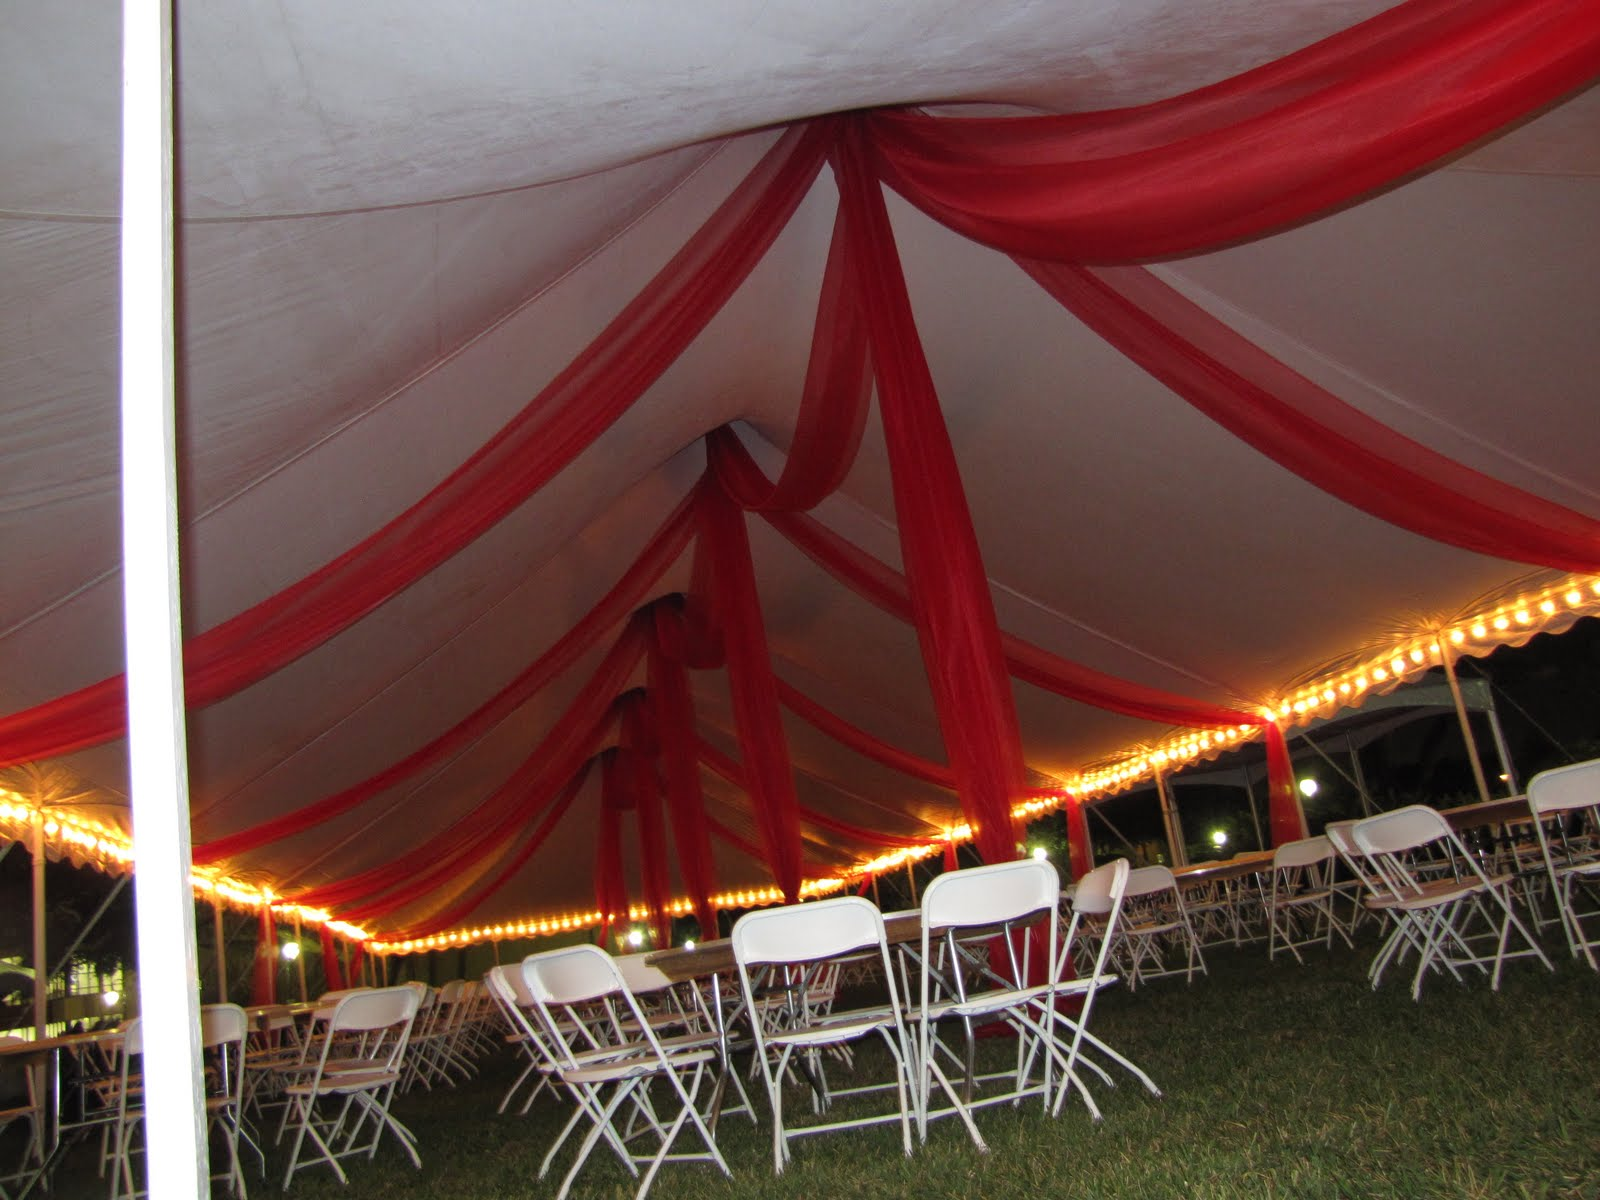 Tent Organza Swags at night time. & Party People Event Decorating Company: Tent Organza Swags at night ...